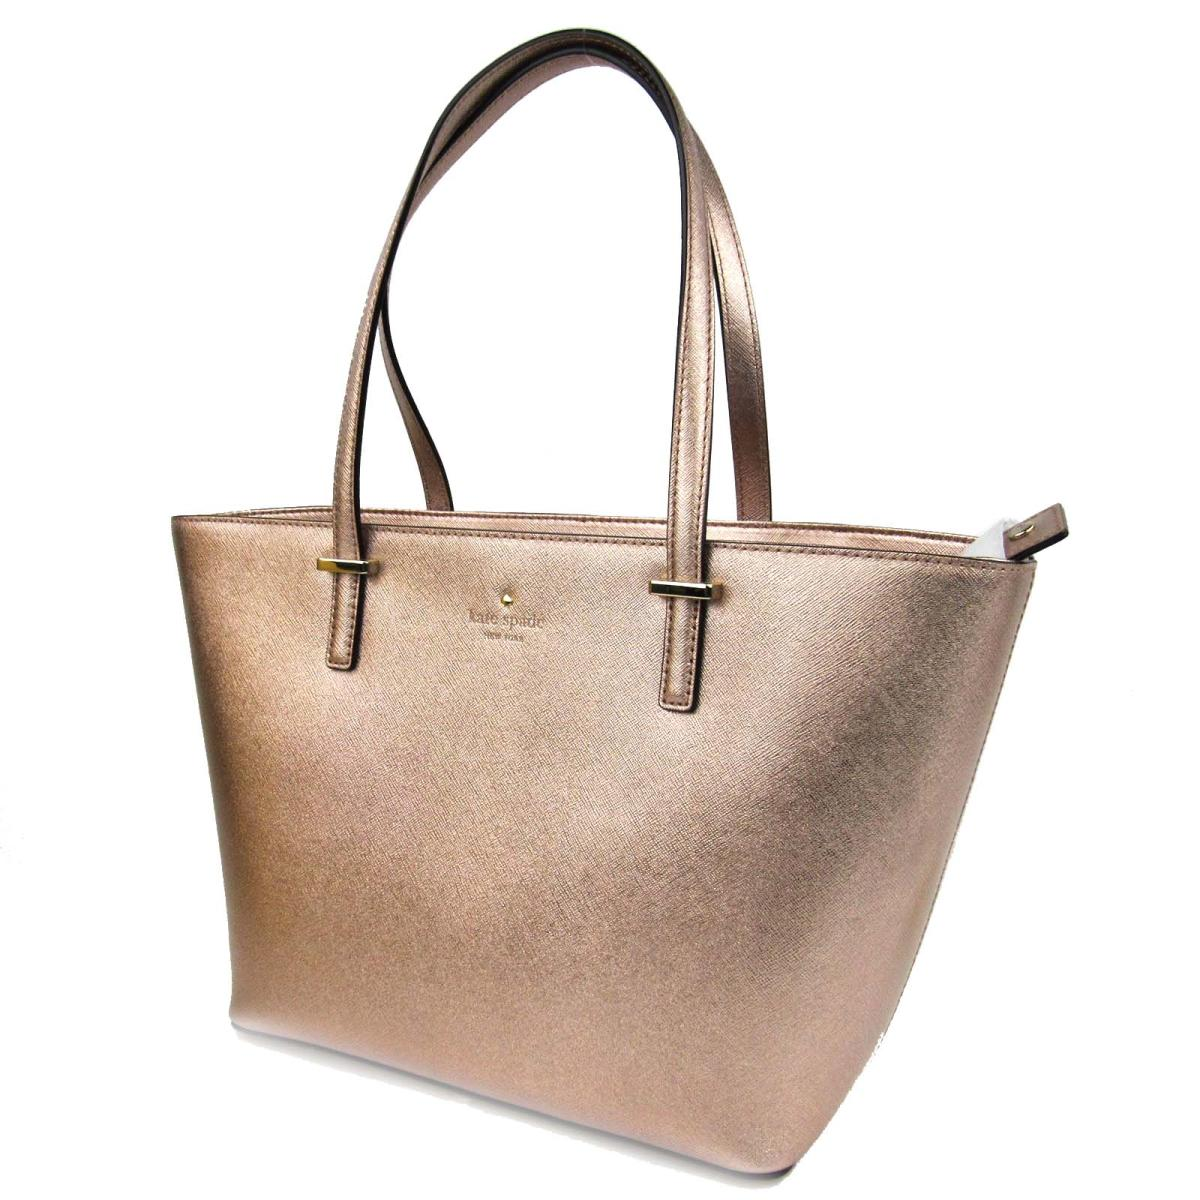 Authentic Kate Spade Shoulder Tote Bag Leather Pink Gold Pxru6956705